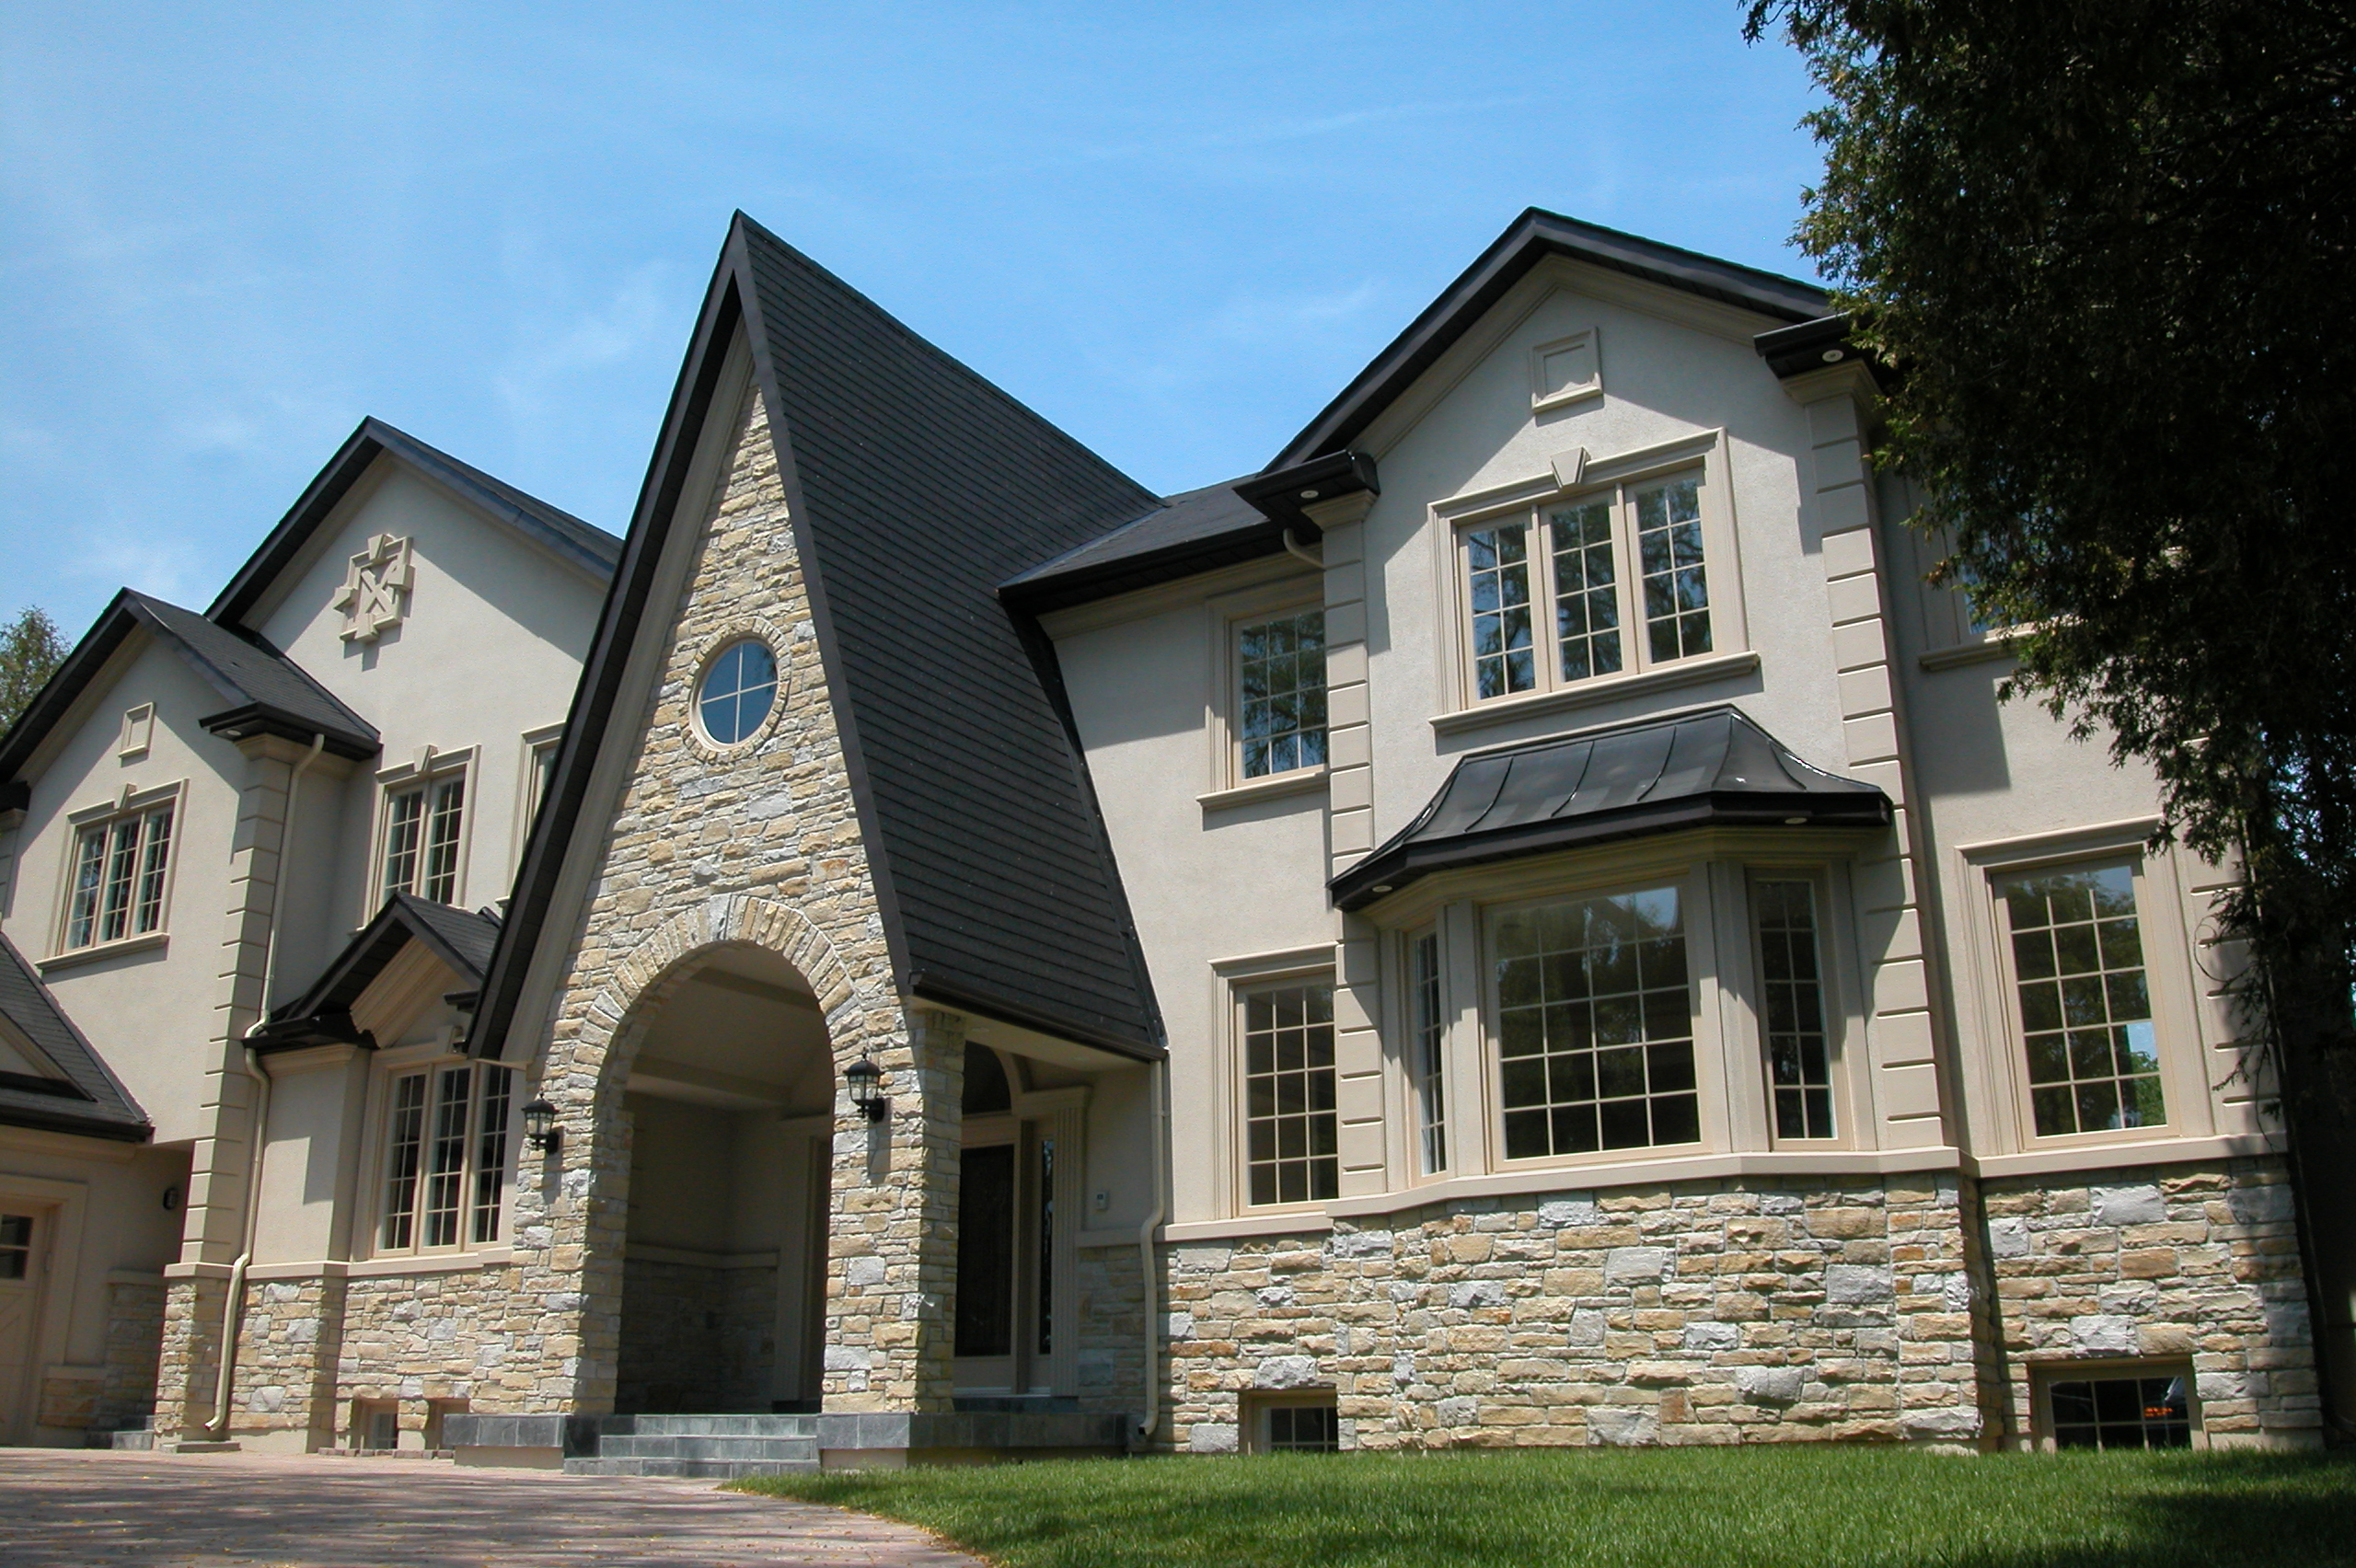 6 atlantis exterior on pinterest james hardie stone for Stucco stone exterior designs